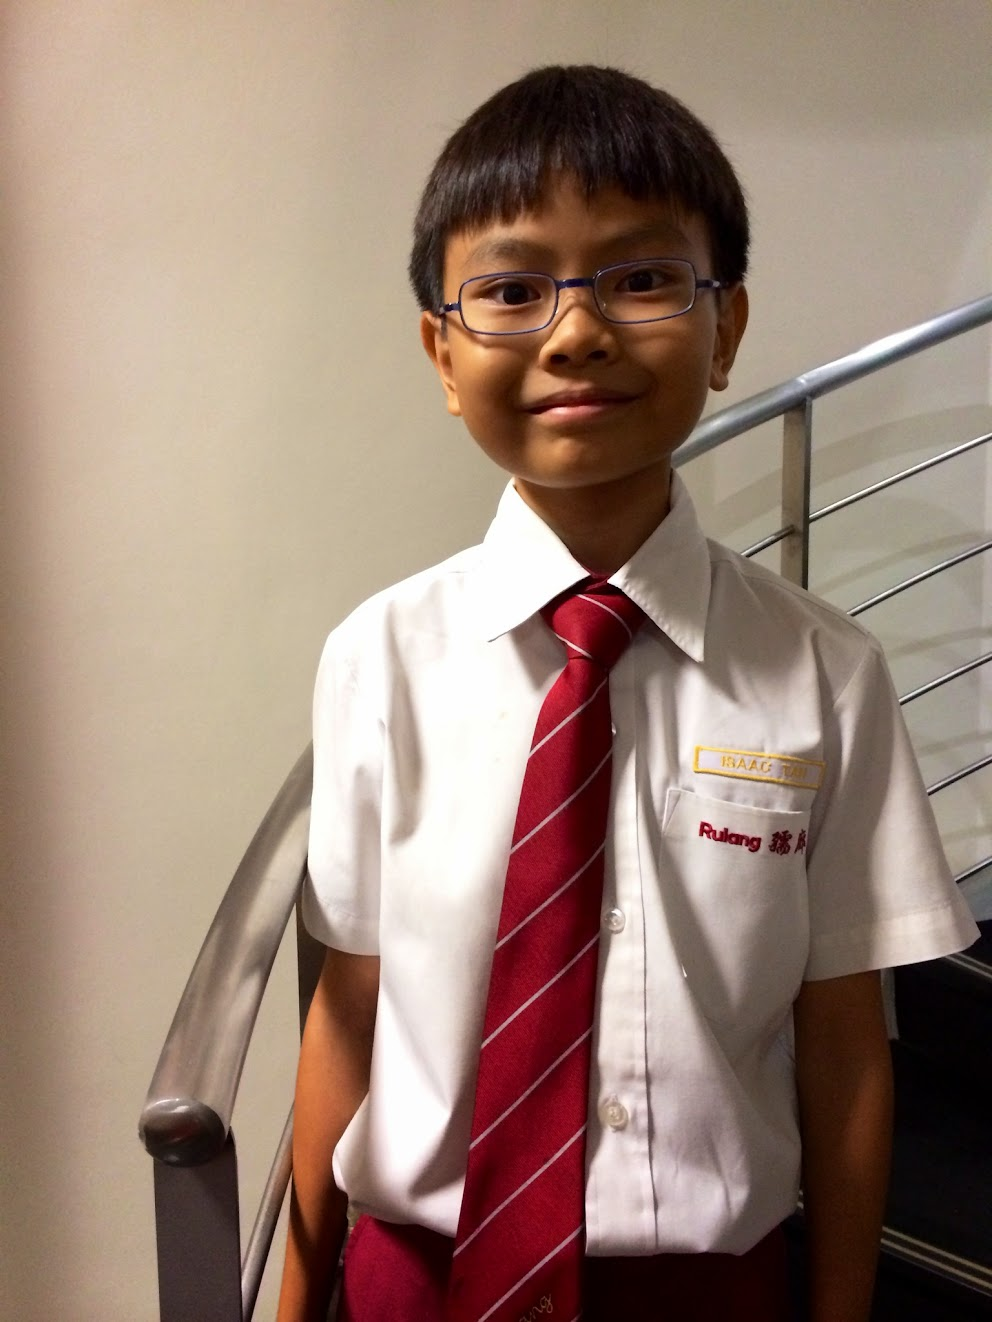 Isaac Tan, Rulang Primary School prefect.